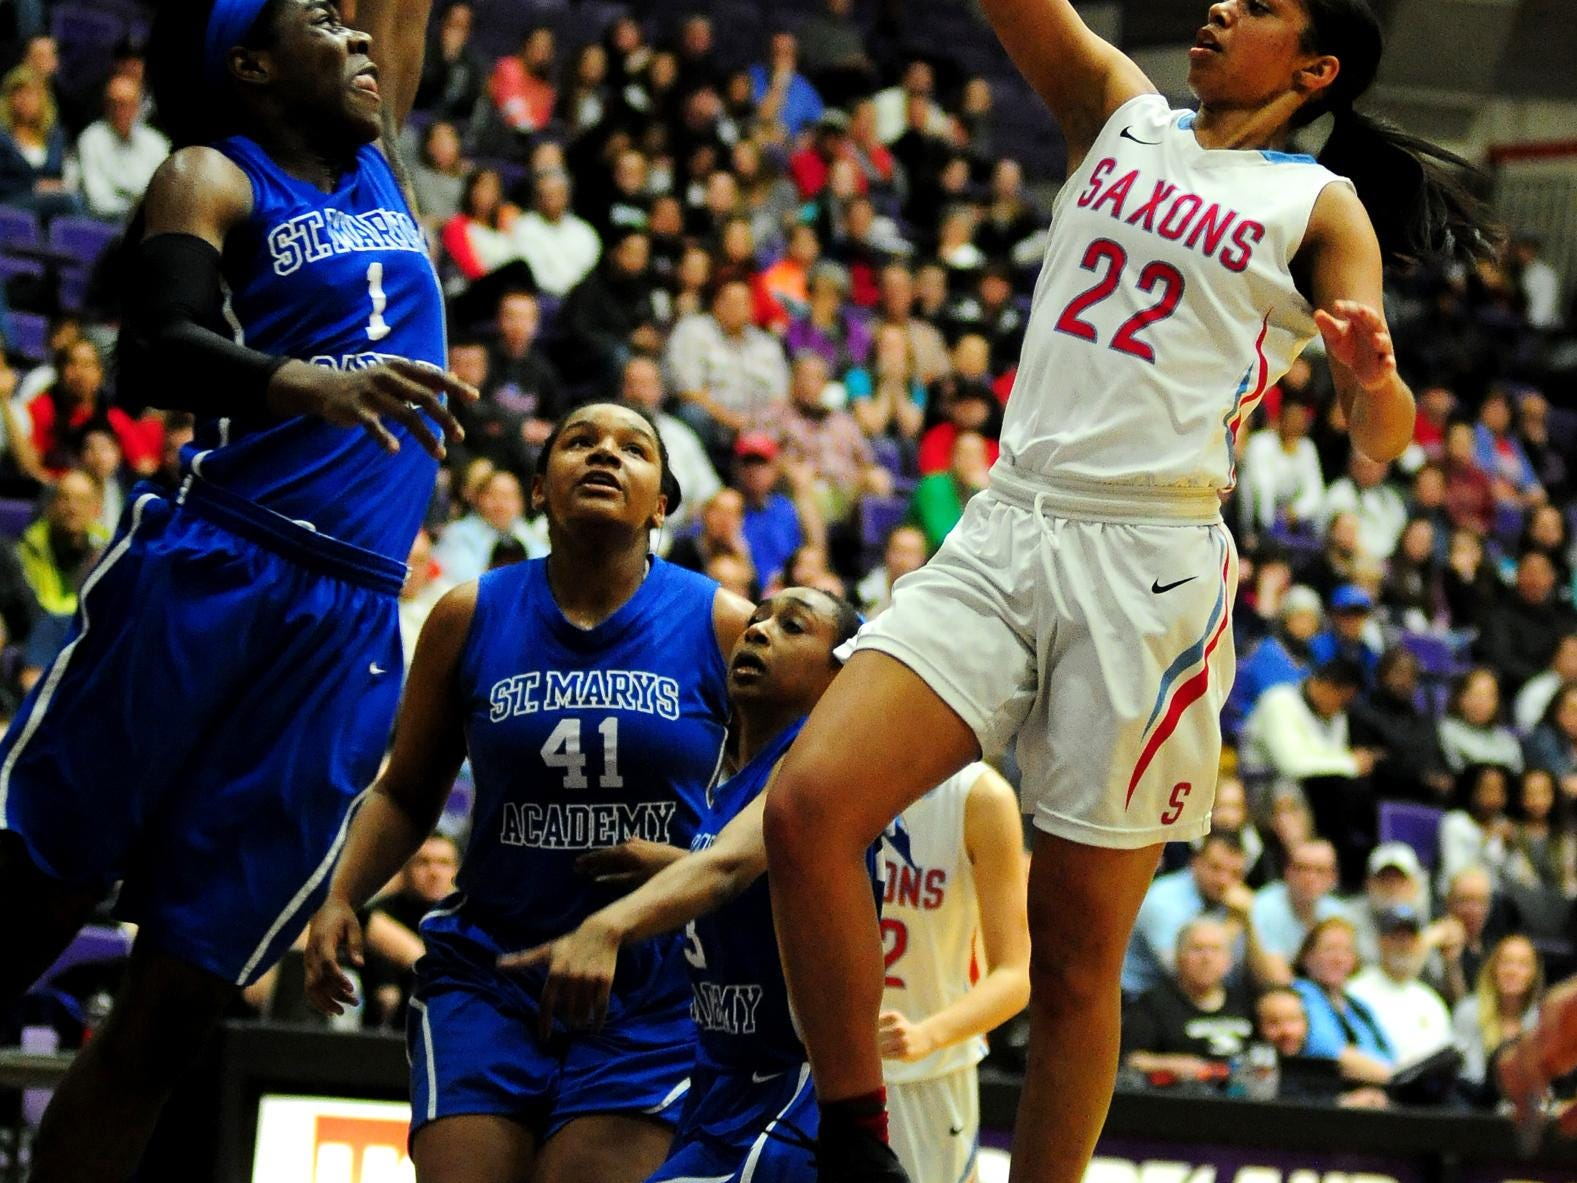 South Salem guard Evina Westbrook shoots a floater of St. Mary's wing Bendu Yeaney during the championship game of the OSAA class 6A basketball tournament inside the Chiles Center, on Saturday, March 14, 2015, at the University of Portland.